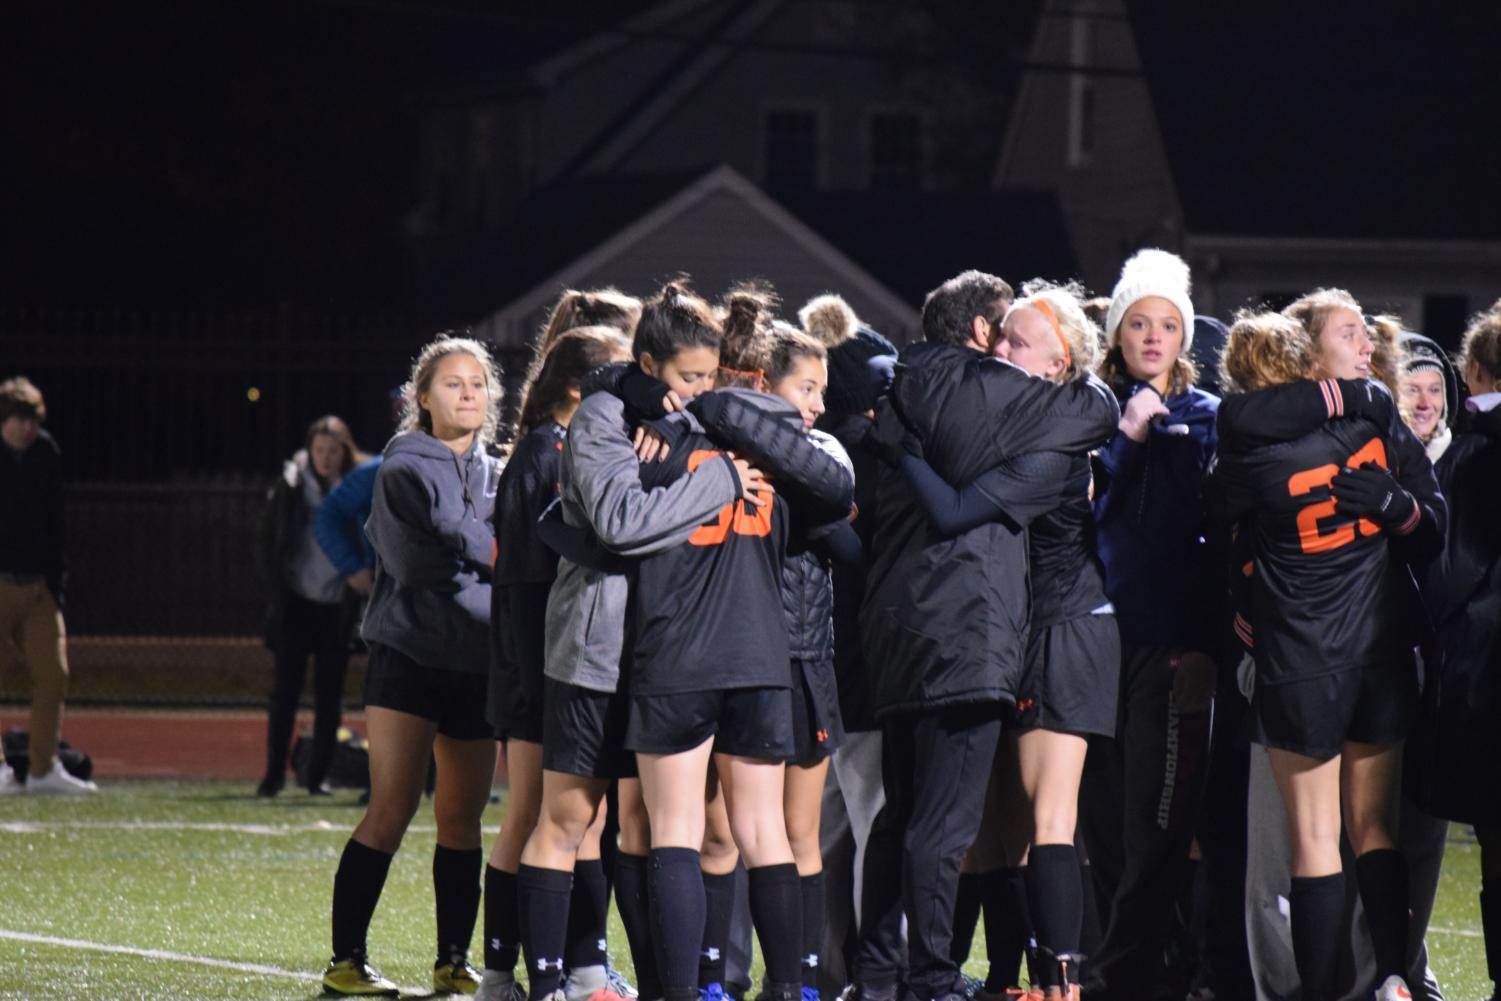 Members of the girls' varsity soccer team comfort each other after their loss.